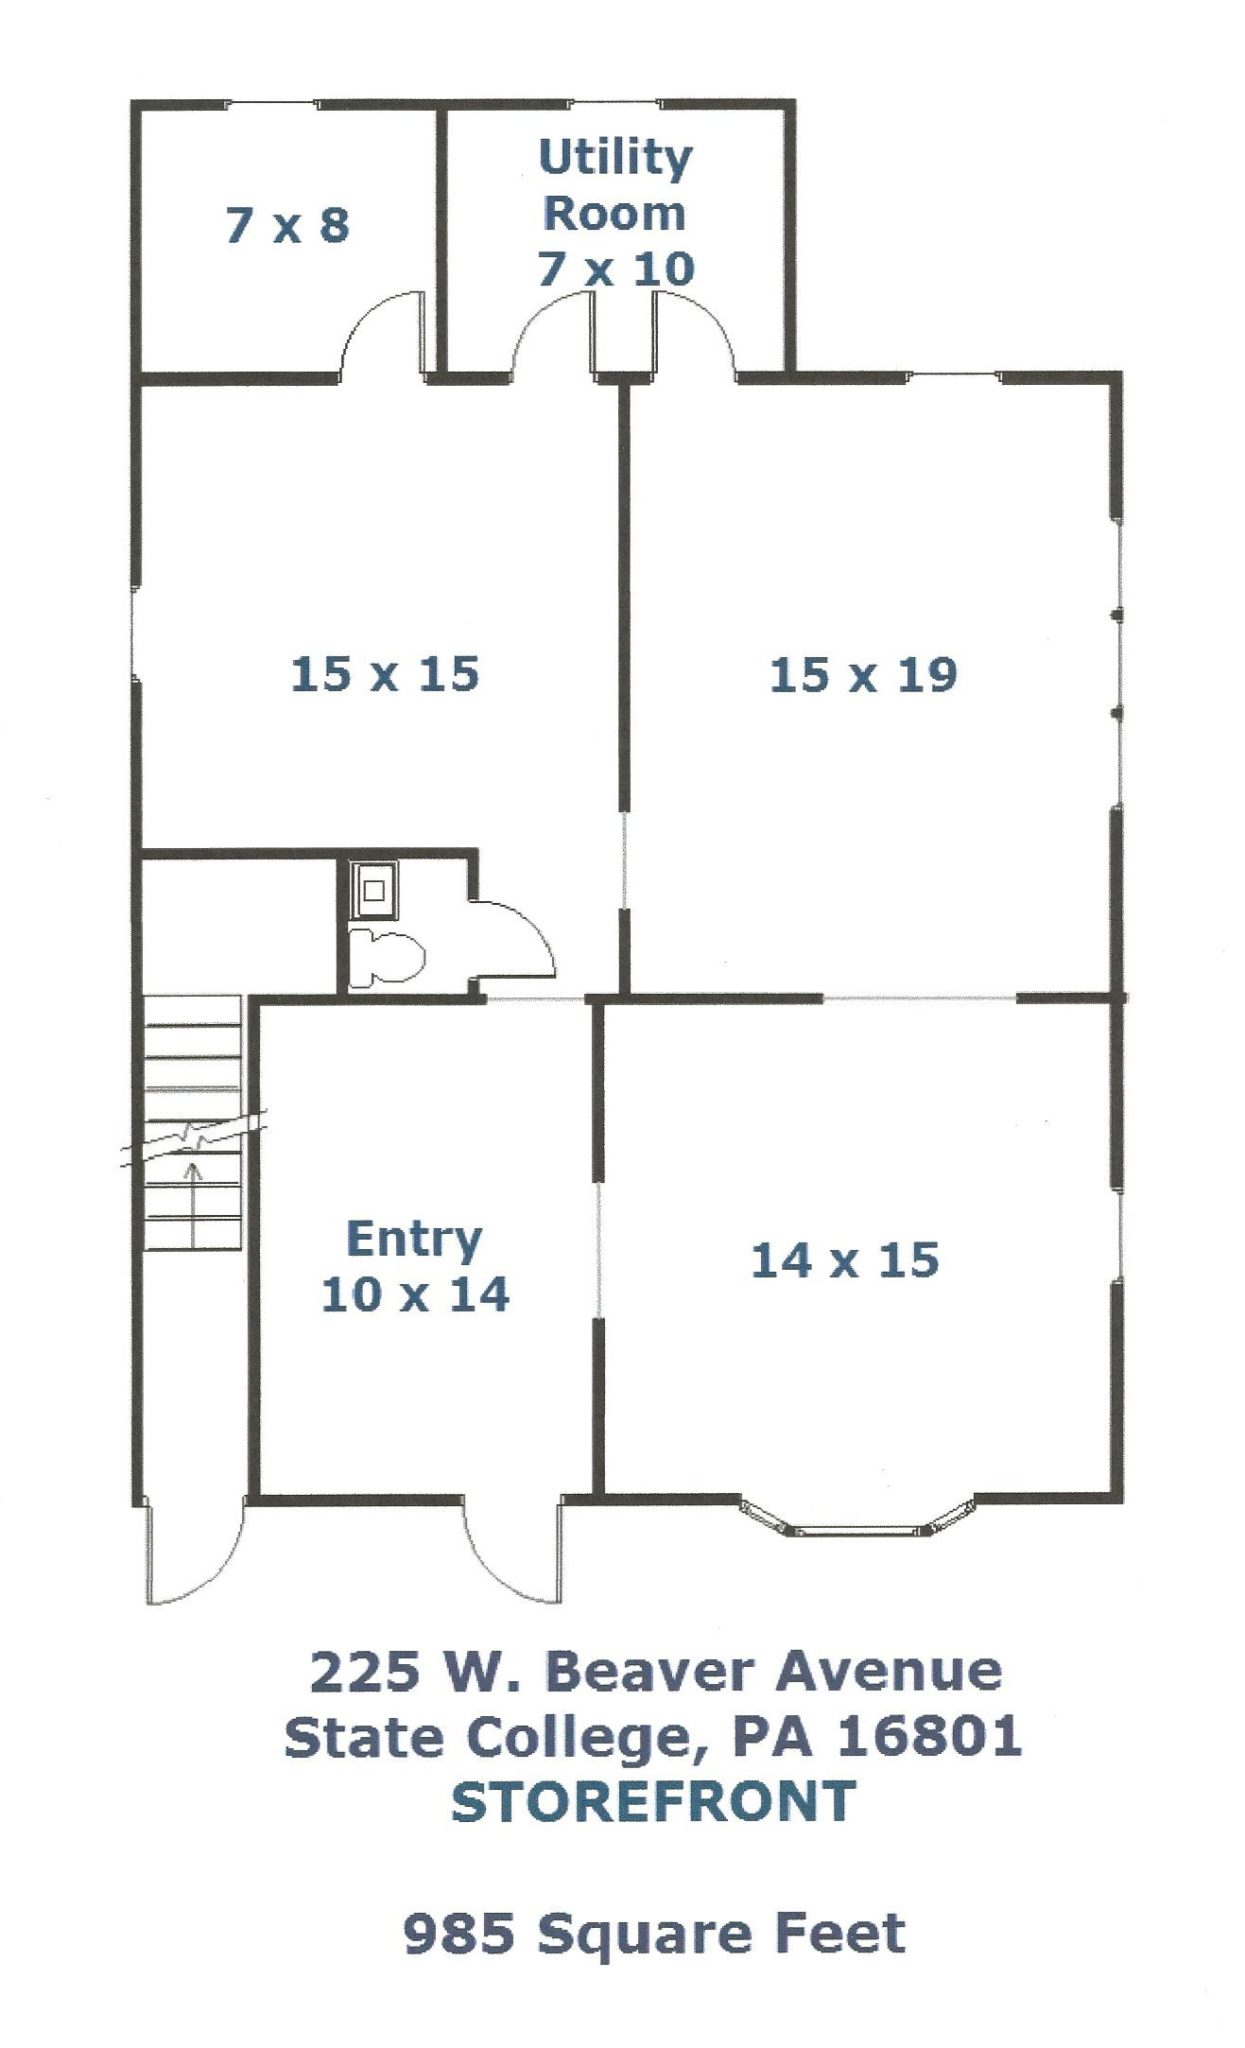 225 W. Beaver Avenue Commercial Space Floor Plan